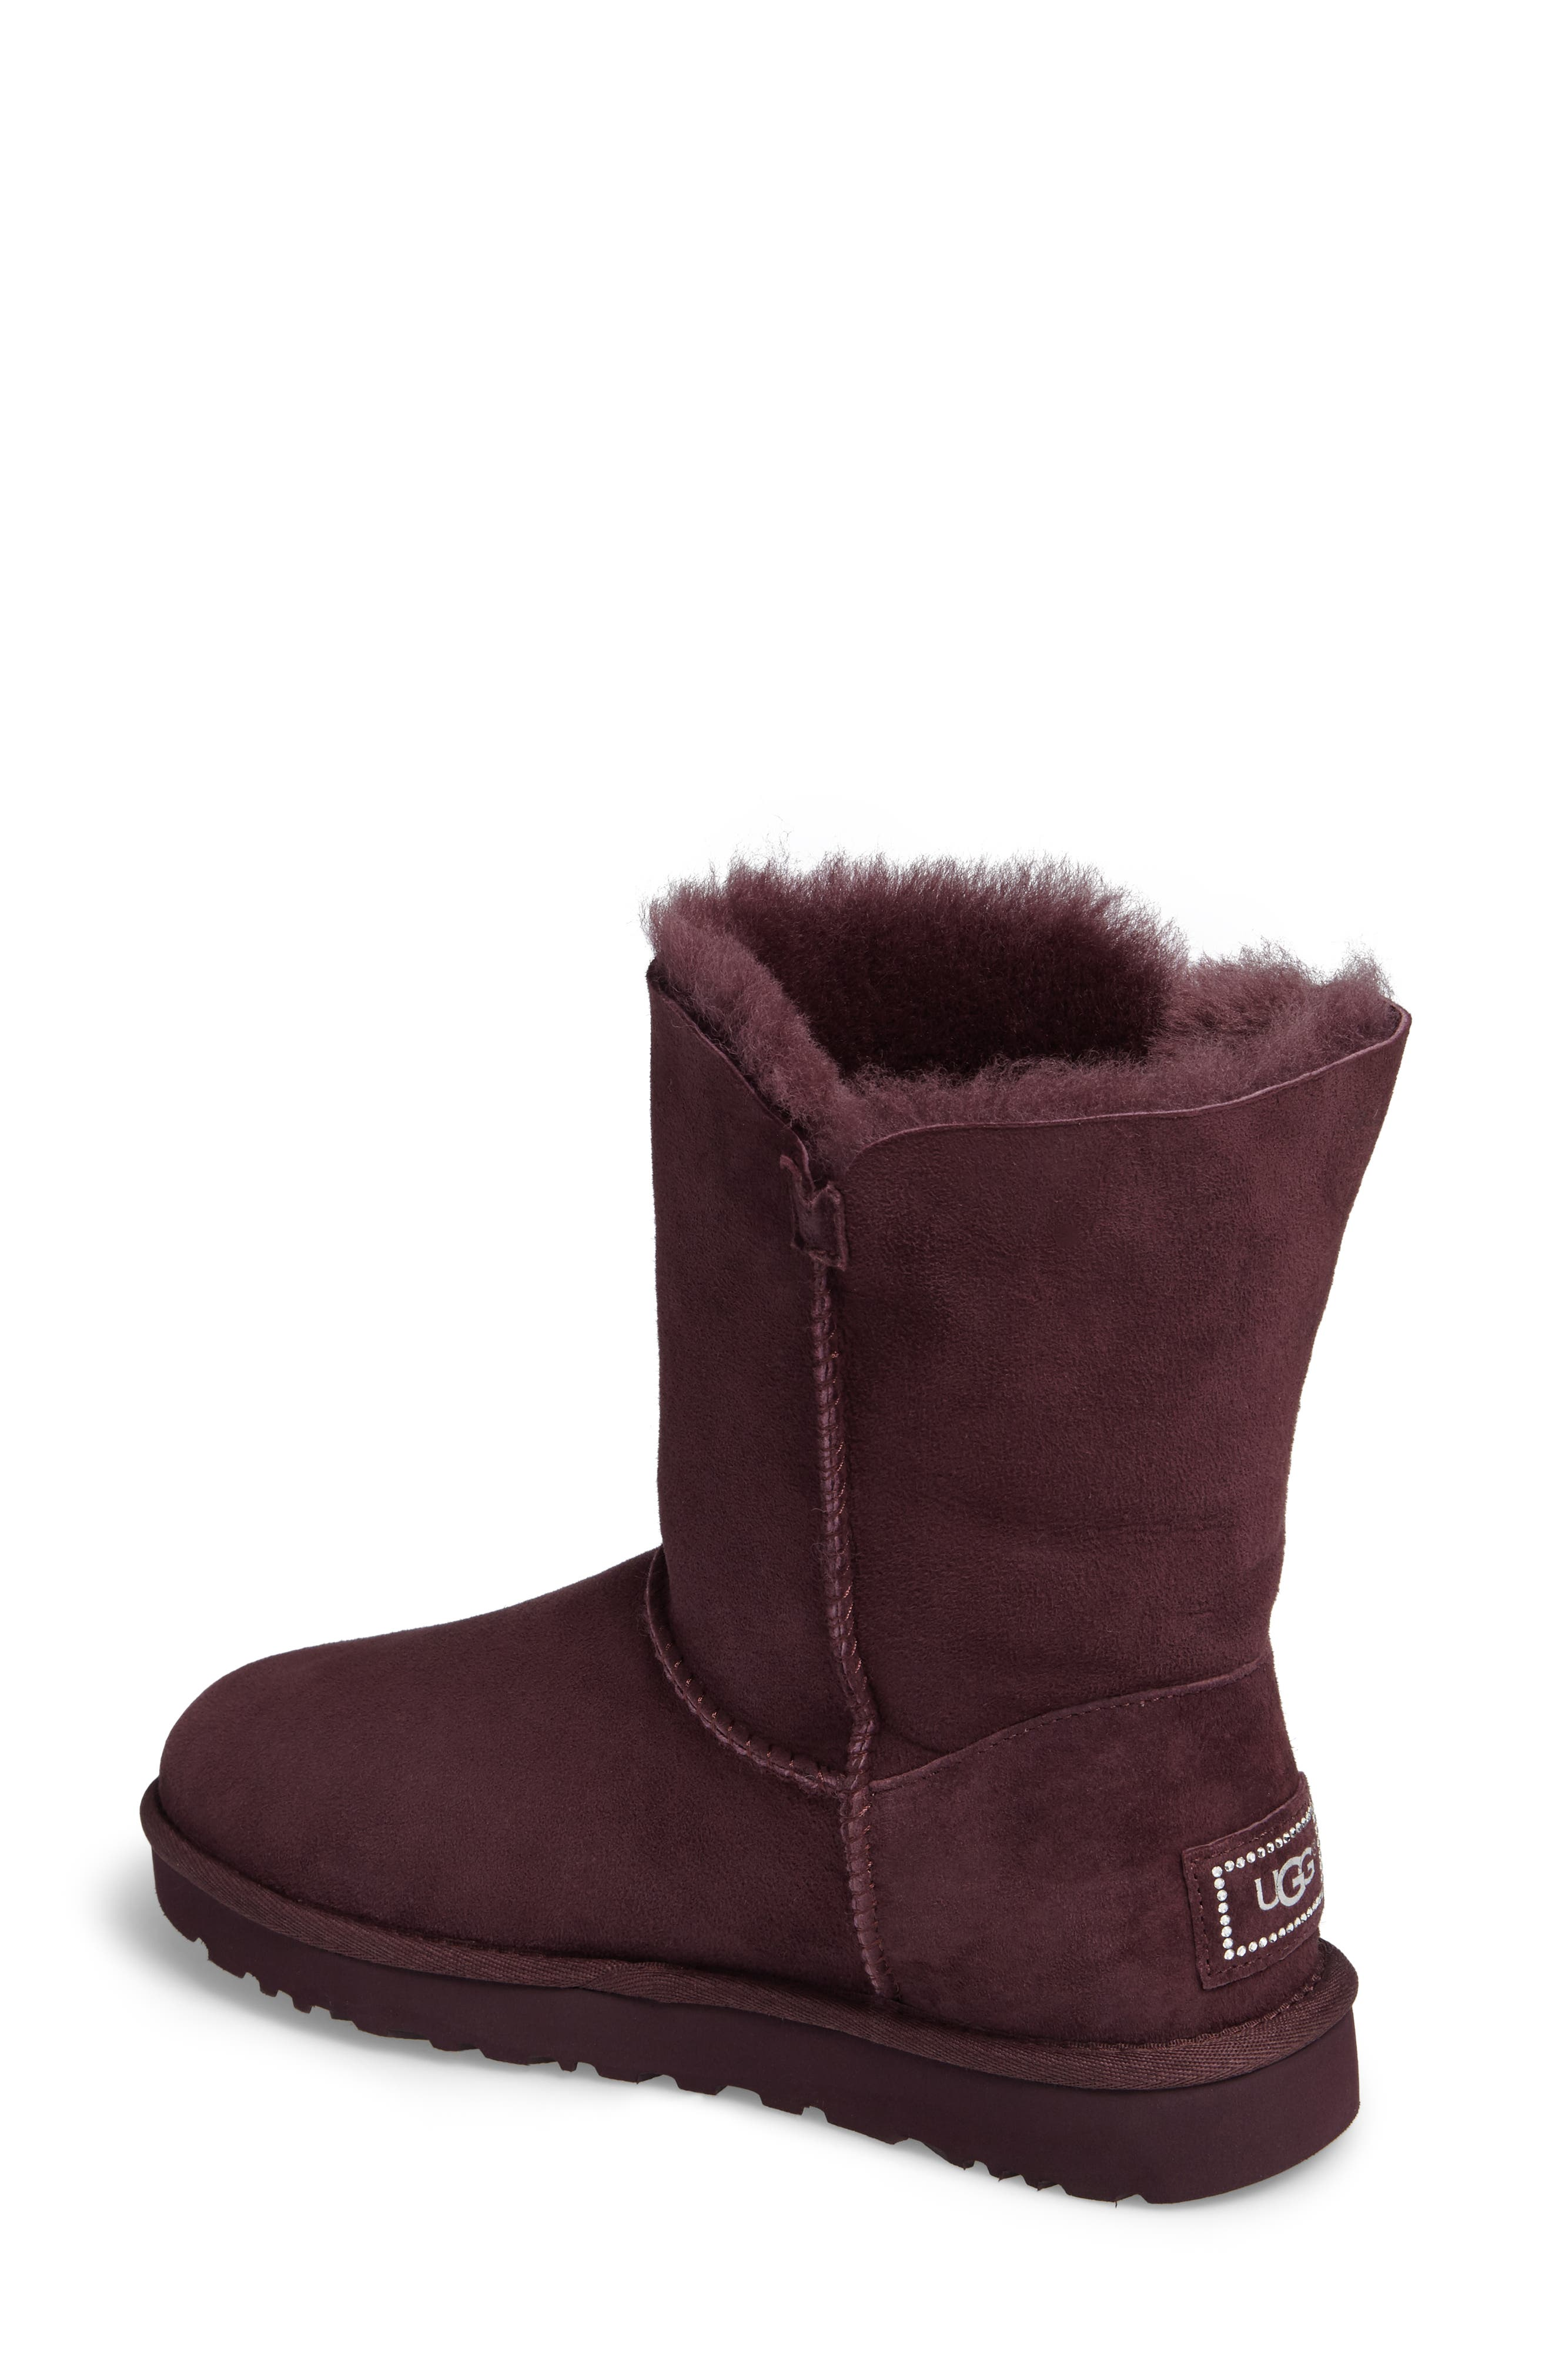 Alternate Image 2  - UGG® Bailey Button Bling Genuine Shearling Boot (Women)